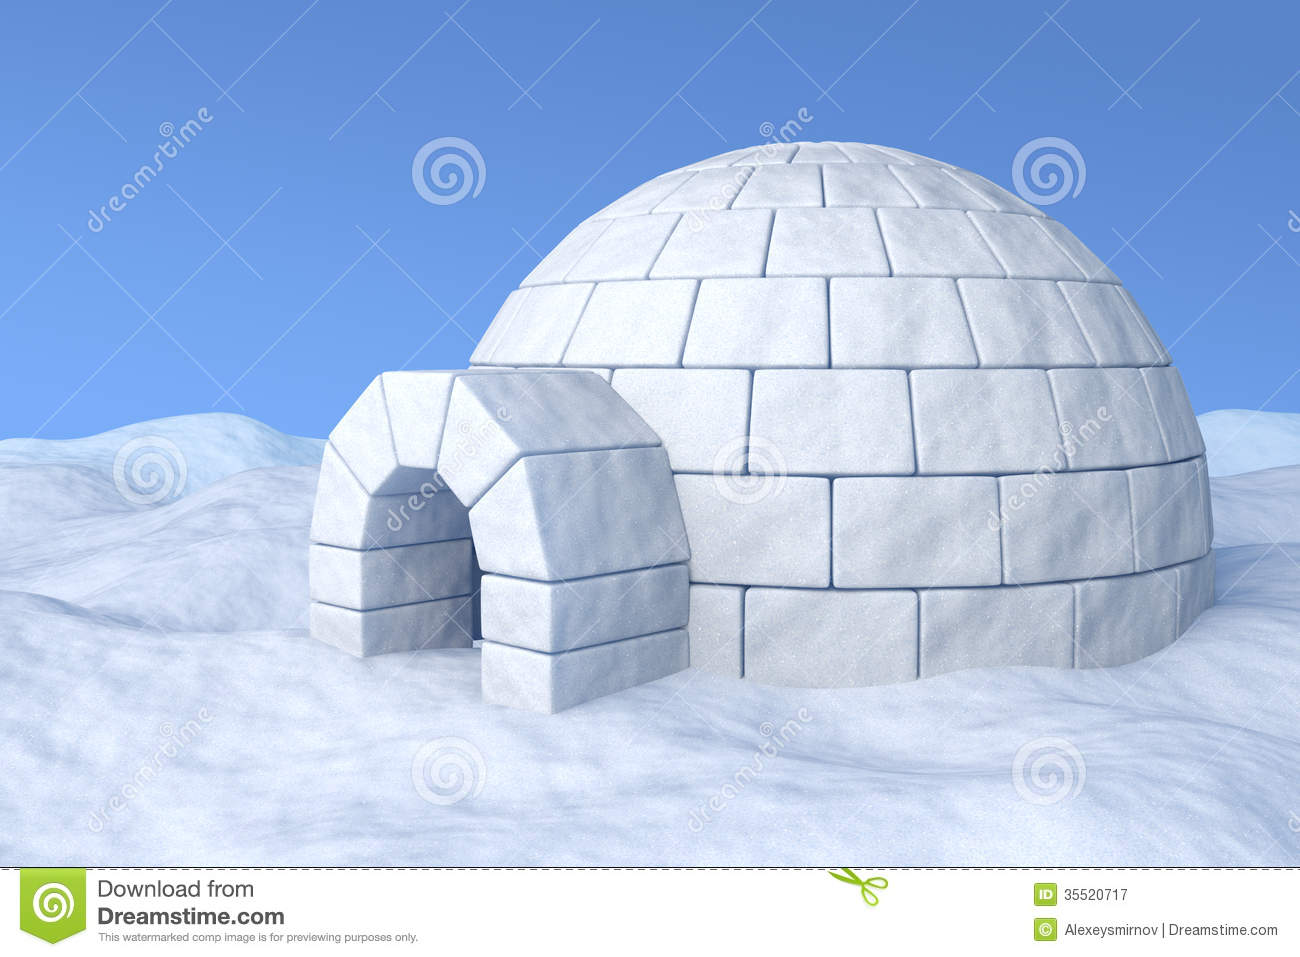 igloo sur la neige illustration stock illustration du bloc 35520717. Black Bedroom Furniture Sets. Home Design Ideas